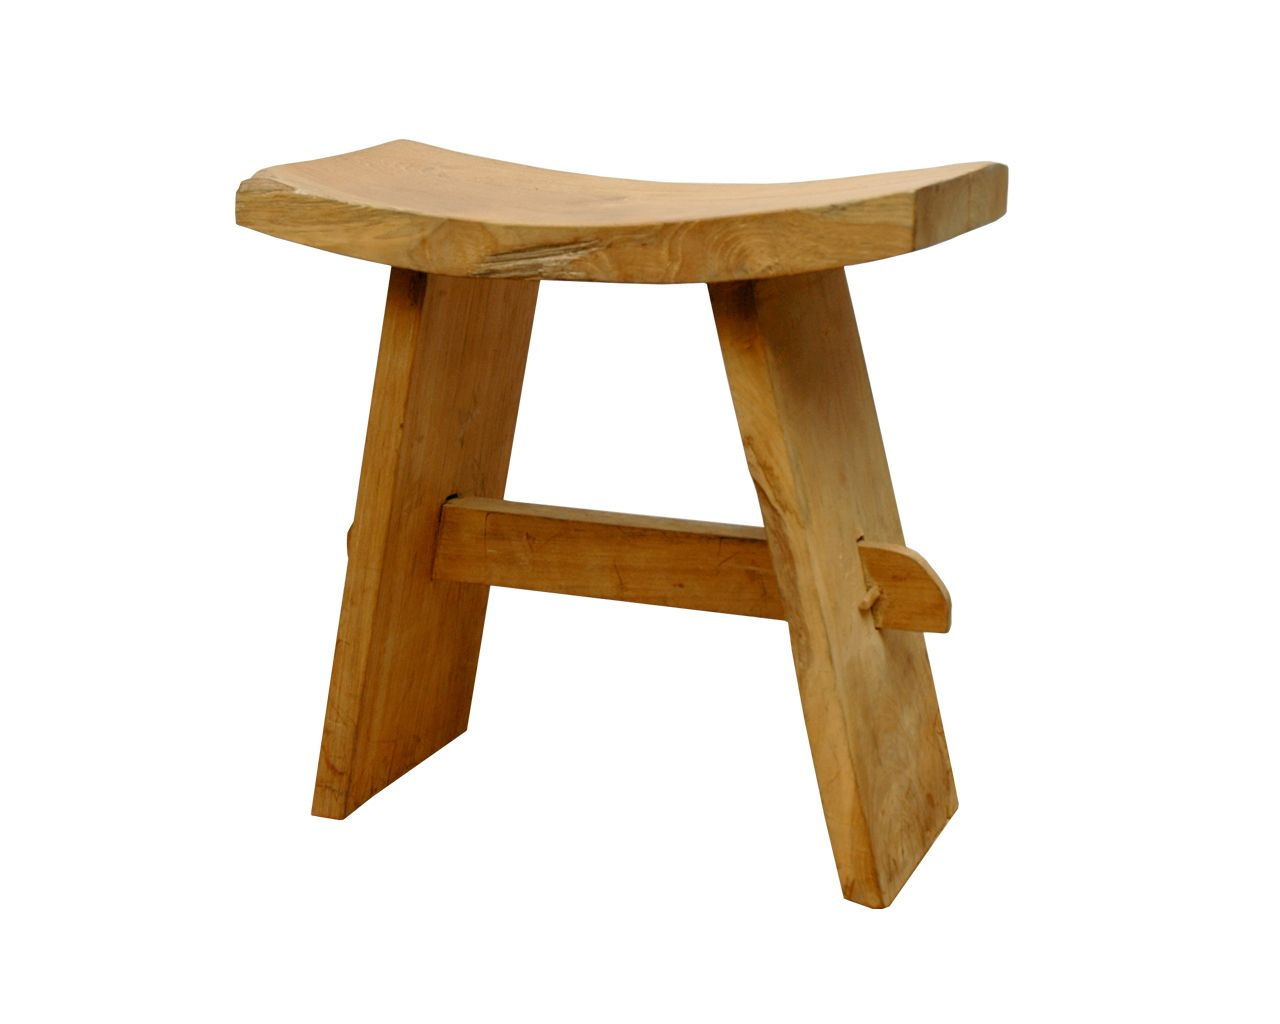 asian-stool-wooden This looks easy enough to make. Pallet wood would be  sc 1 st  Pinterest & asian-stool-wooden This looks easy enough to make. Pallet wood ... islam-shia.org